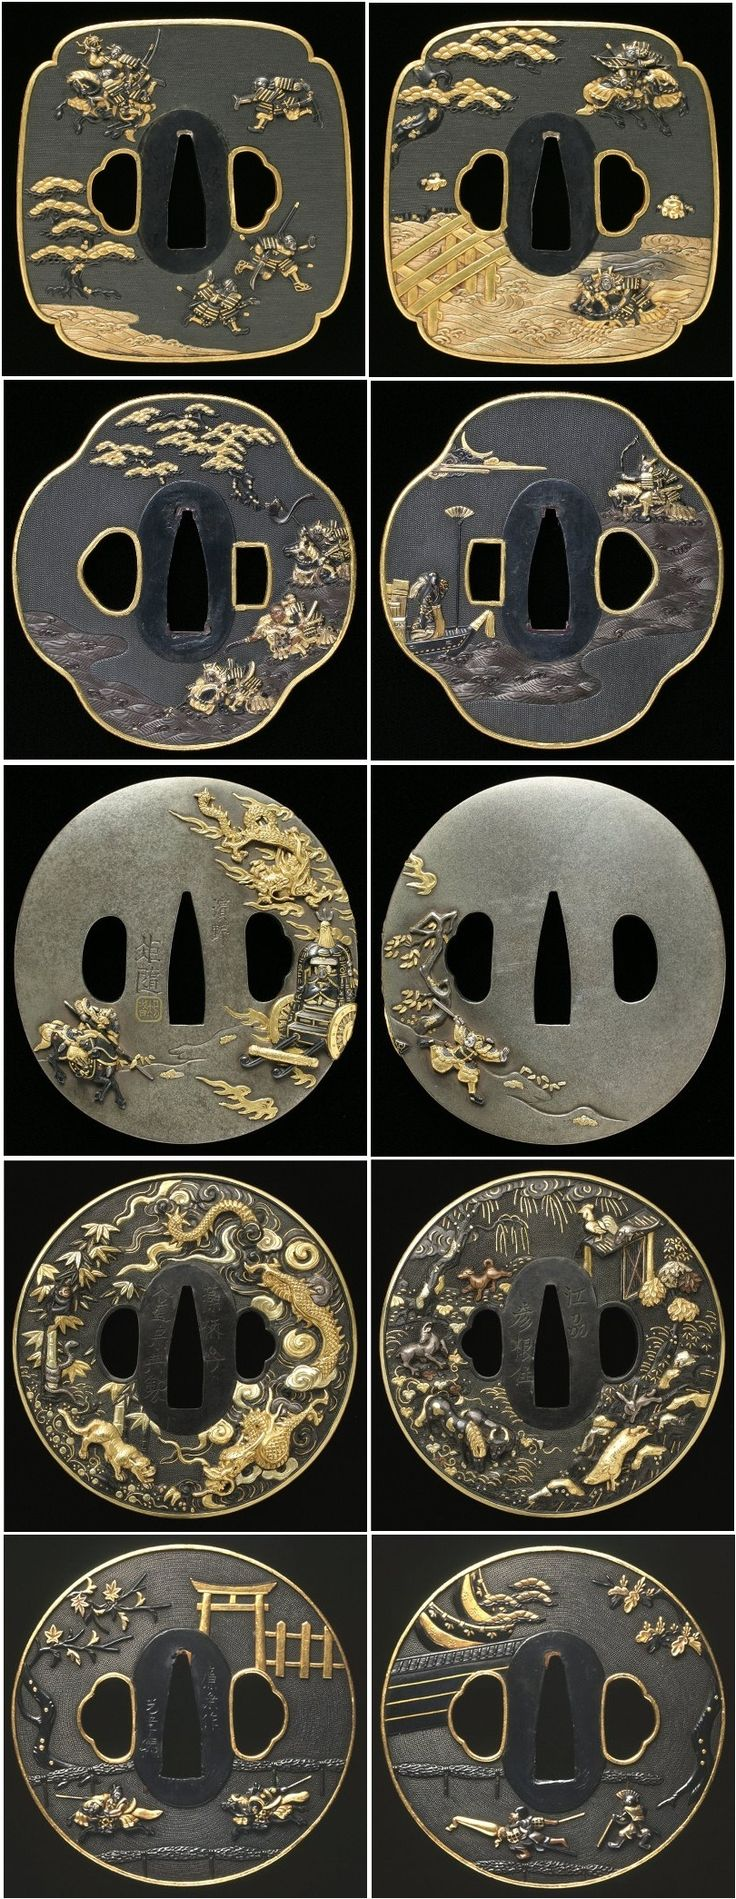 All 10 images are from 5 distinct tsubas first image is from the front of the tsuba the other is the back of the same tsuba